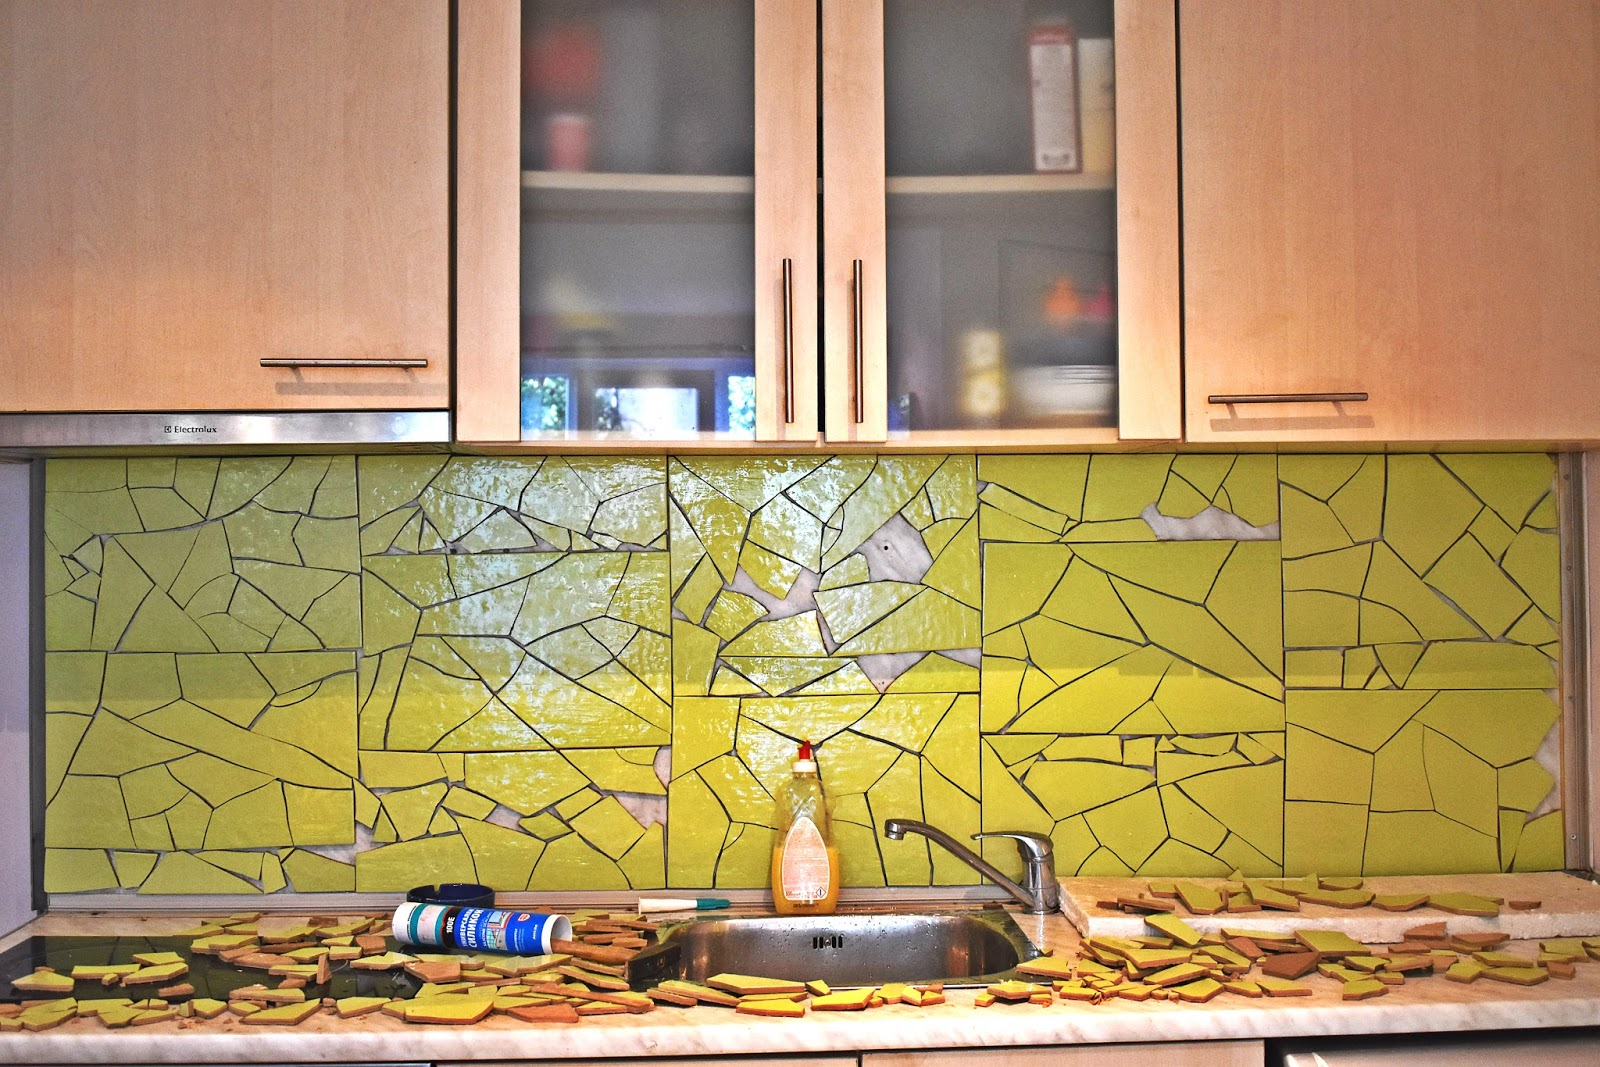 The epic diy project gaudi inspired kitchen backsplash for Epic diy projects